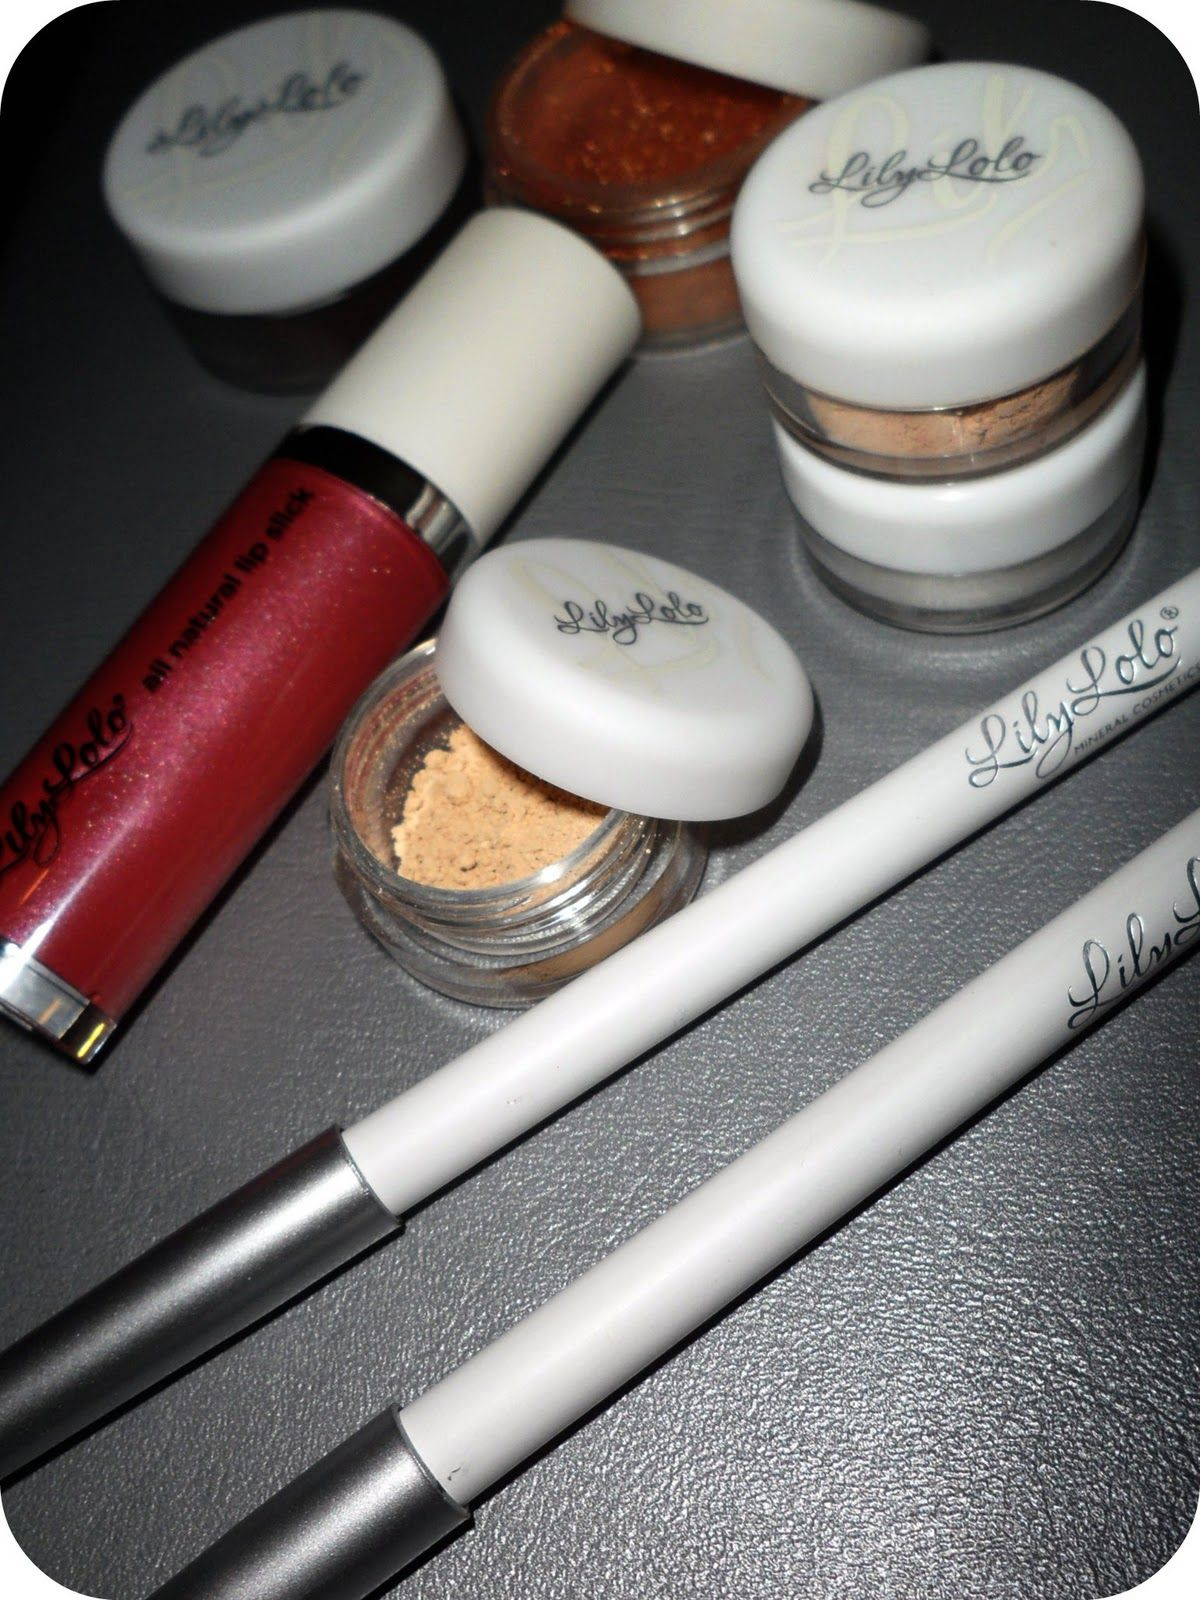 Tuesday Review Lily Lolo Cosmetics Lily lolo, Cosmetics